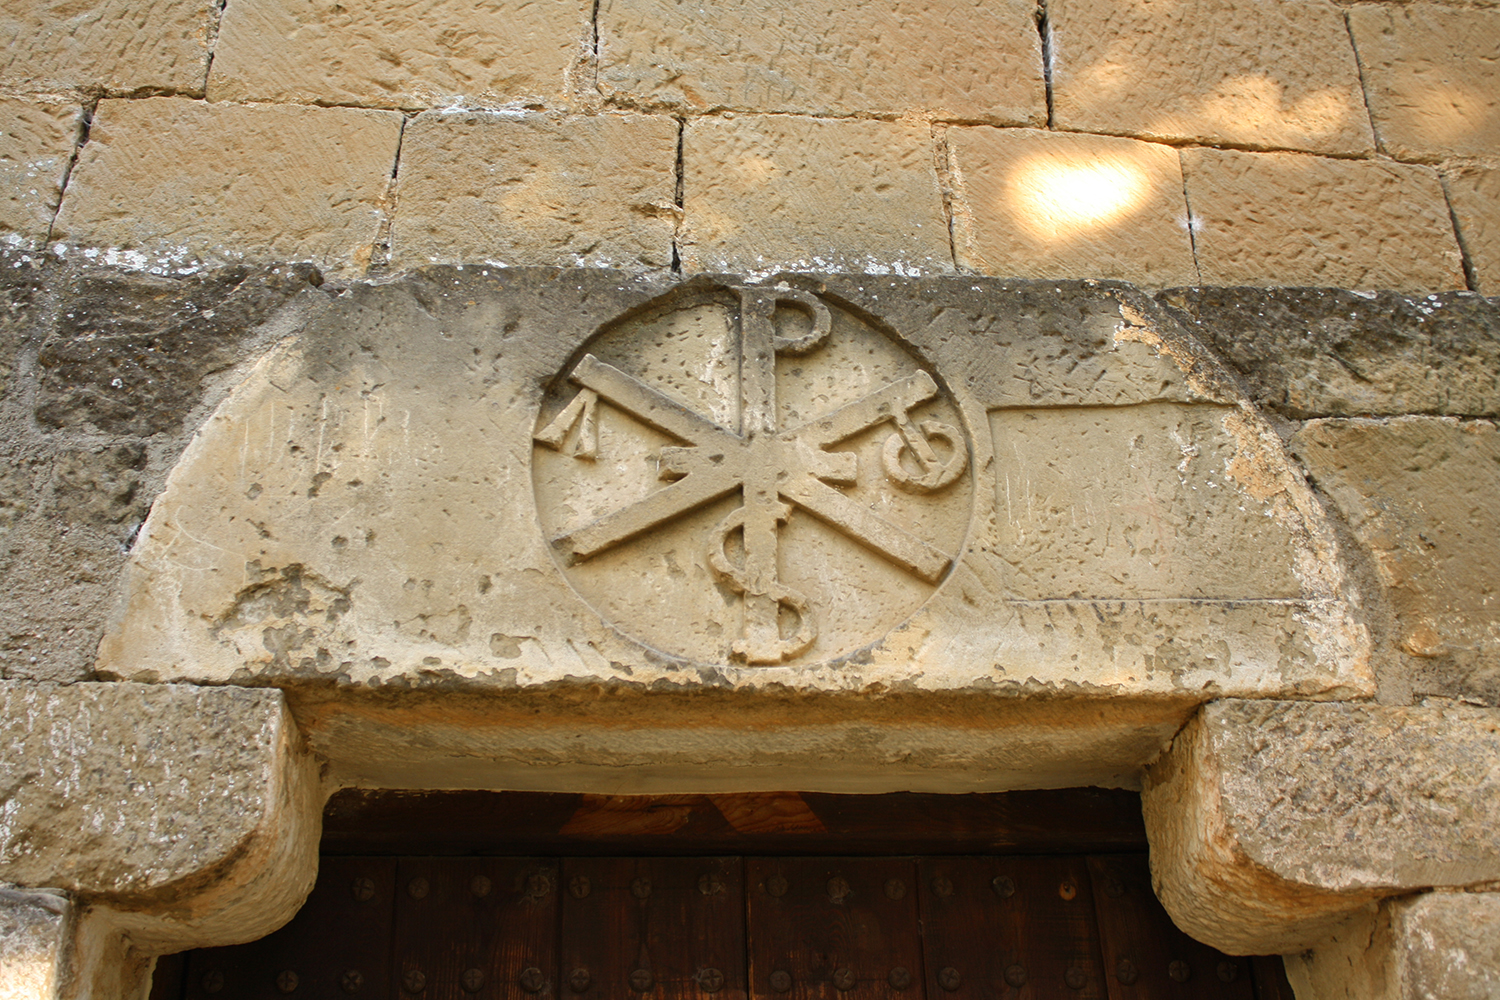 Figure 5: Twelfth-century tympanum with the monogram of Christ incorporating the  alpha  and  omega , placed over the doorway of the church of Santa Cruz/San Martín in Riglos (Aragon), Spain. (Photo by Julia Perratore.)